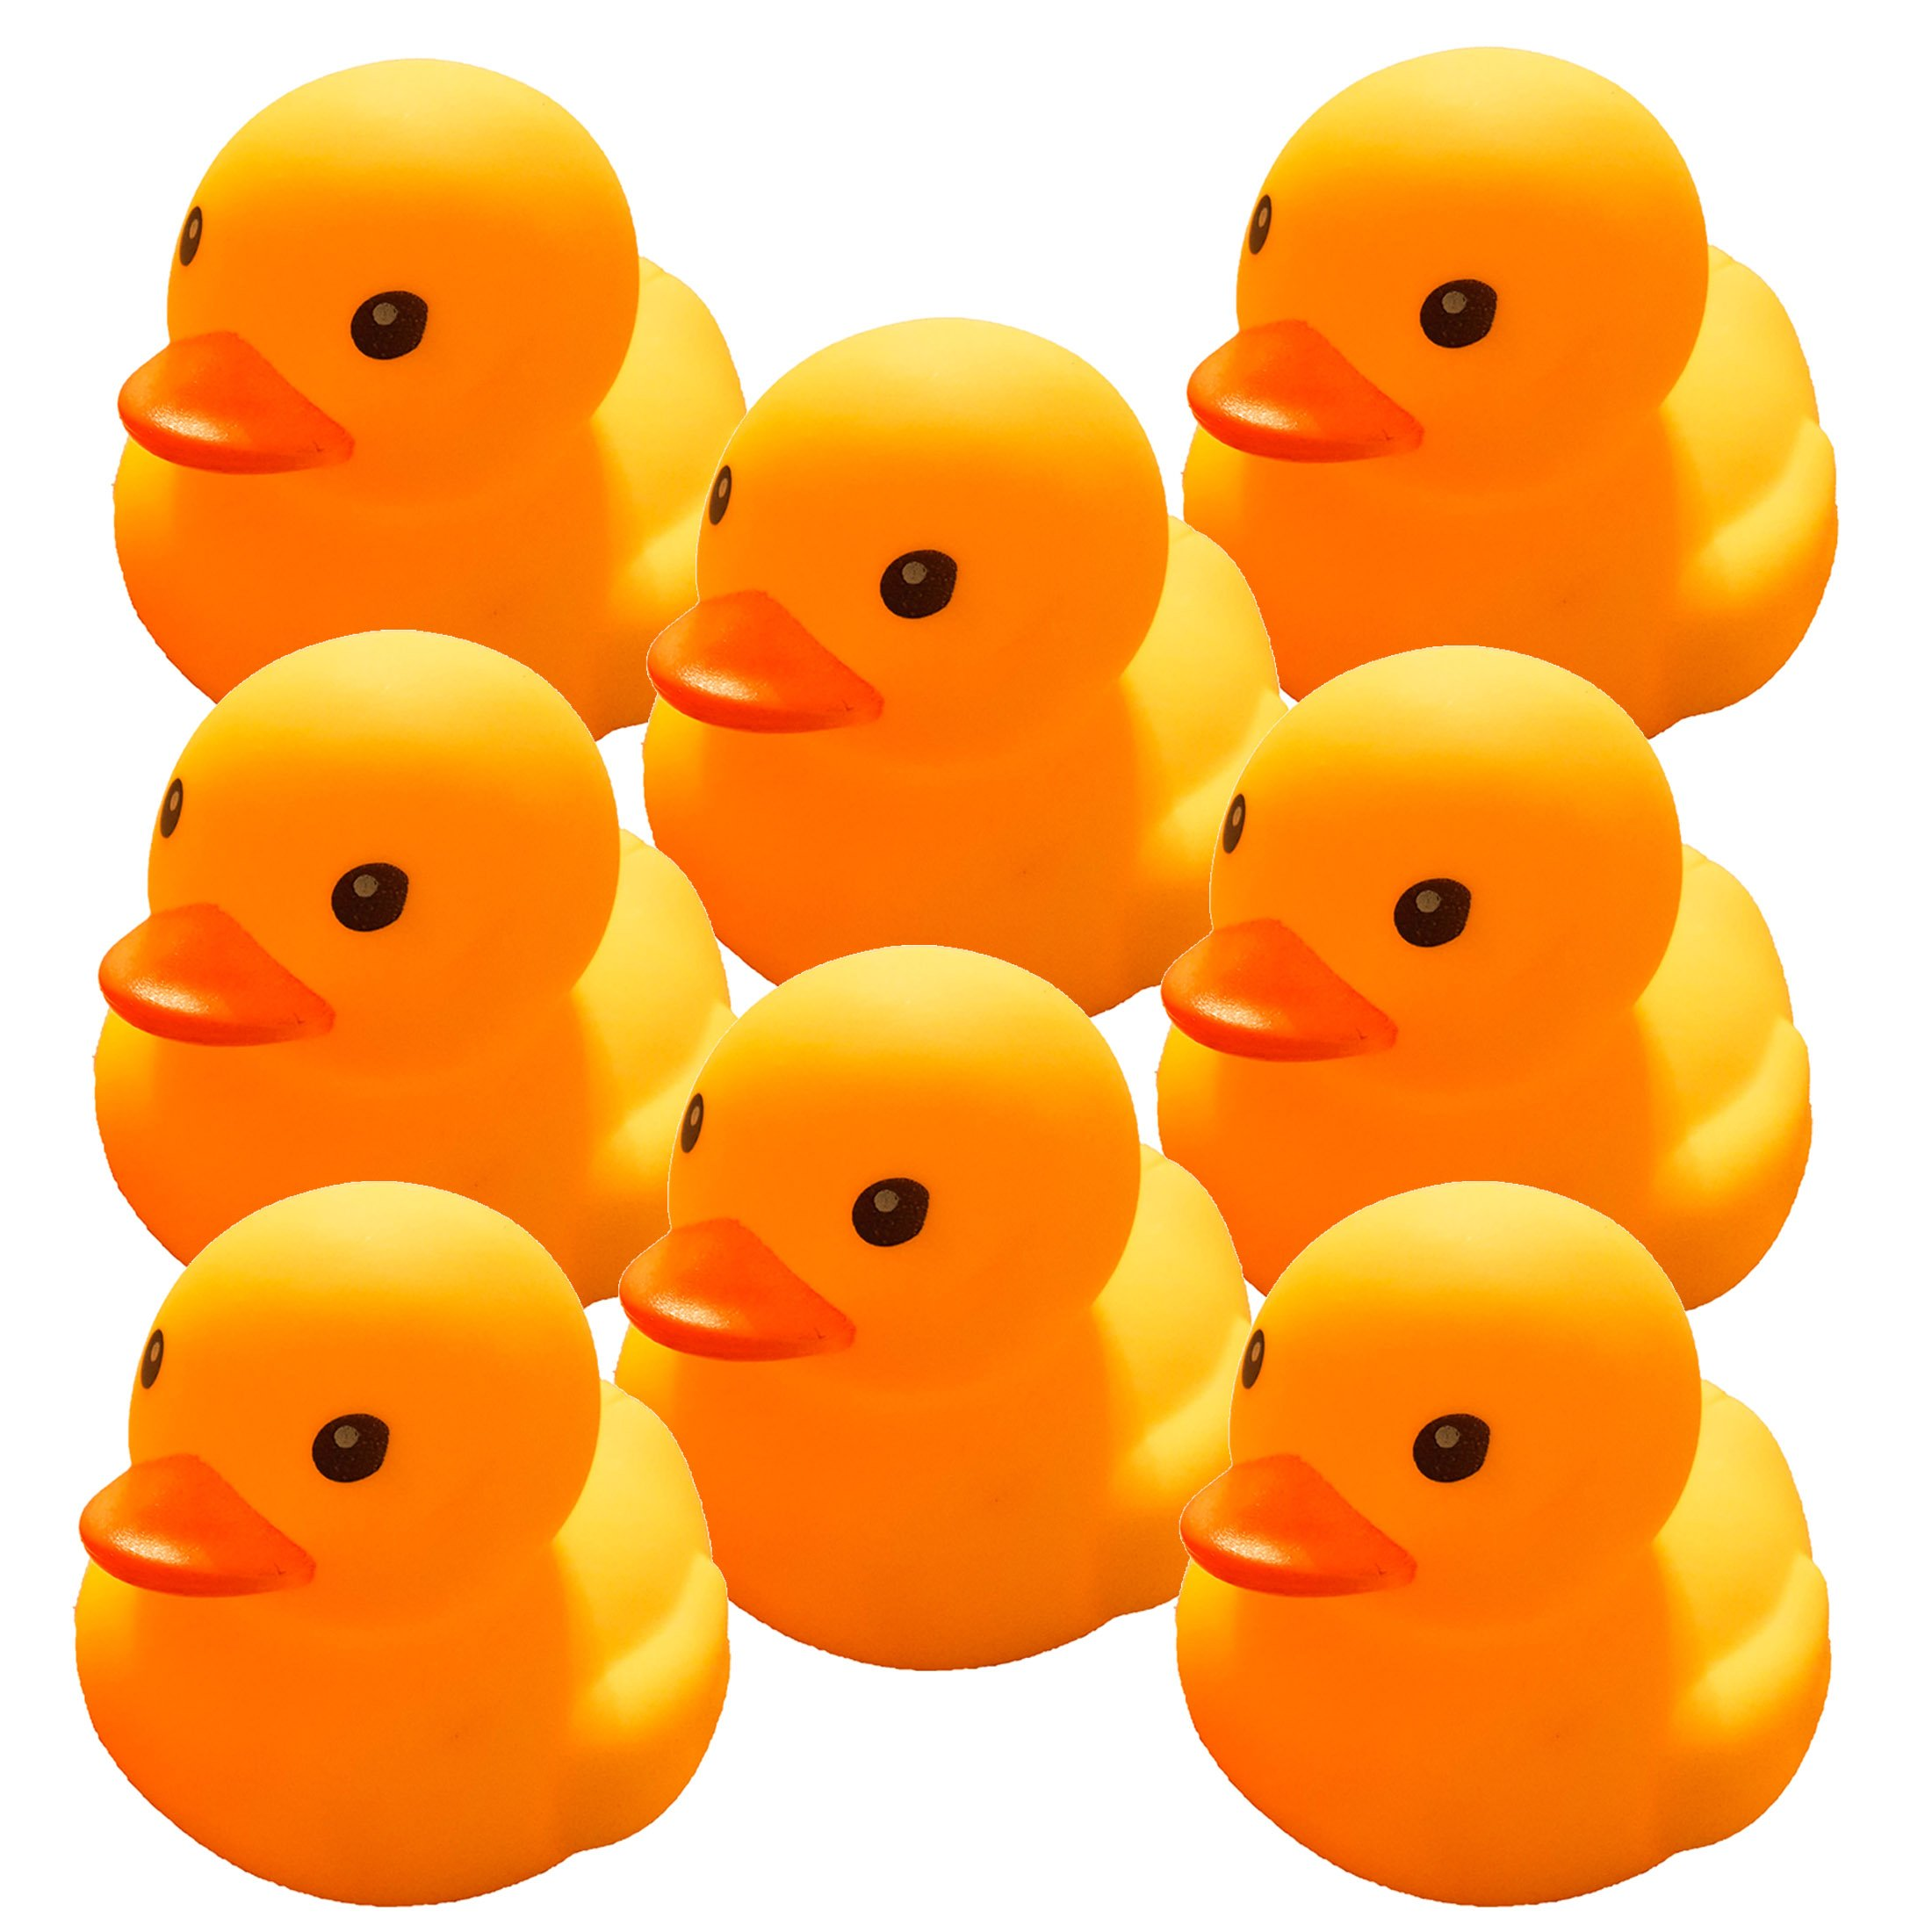 "Bulk Rubber Ducks - Large Yellow Rubber Ducks - (4"" x 3"" x 3"", Yellow, 8-pack) - DISCOUNT DUCKS"